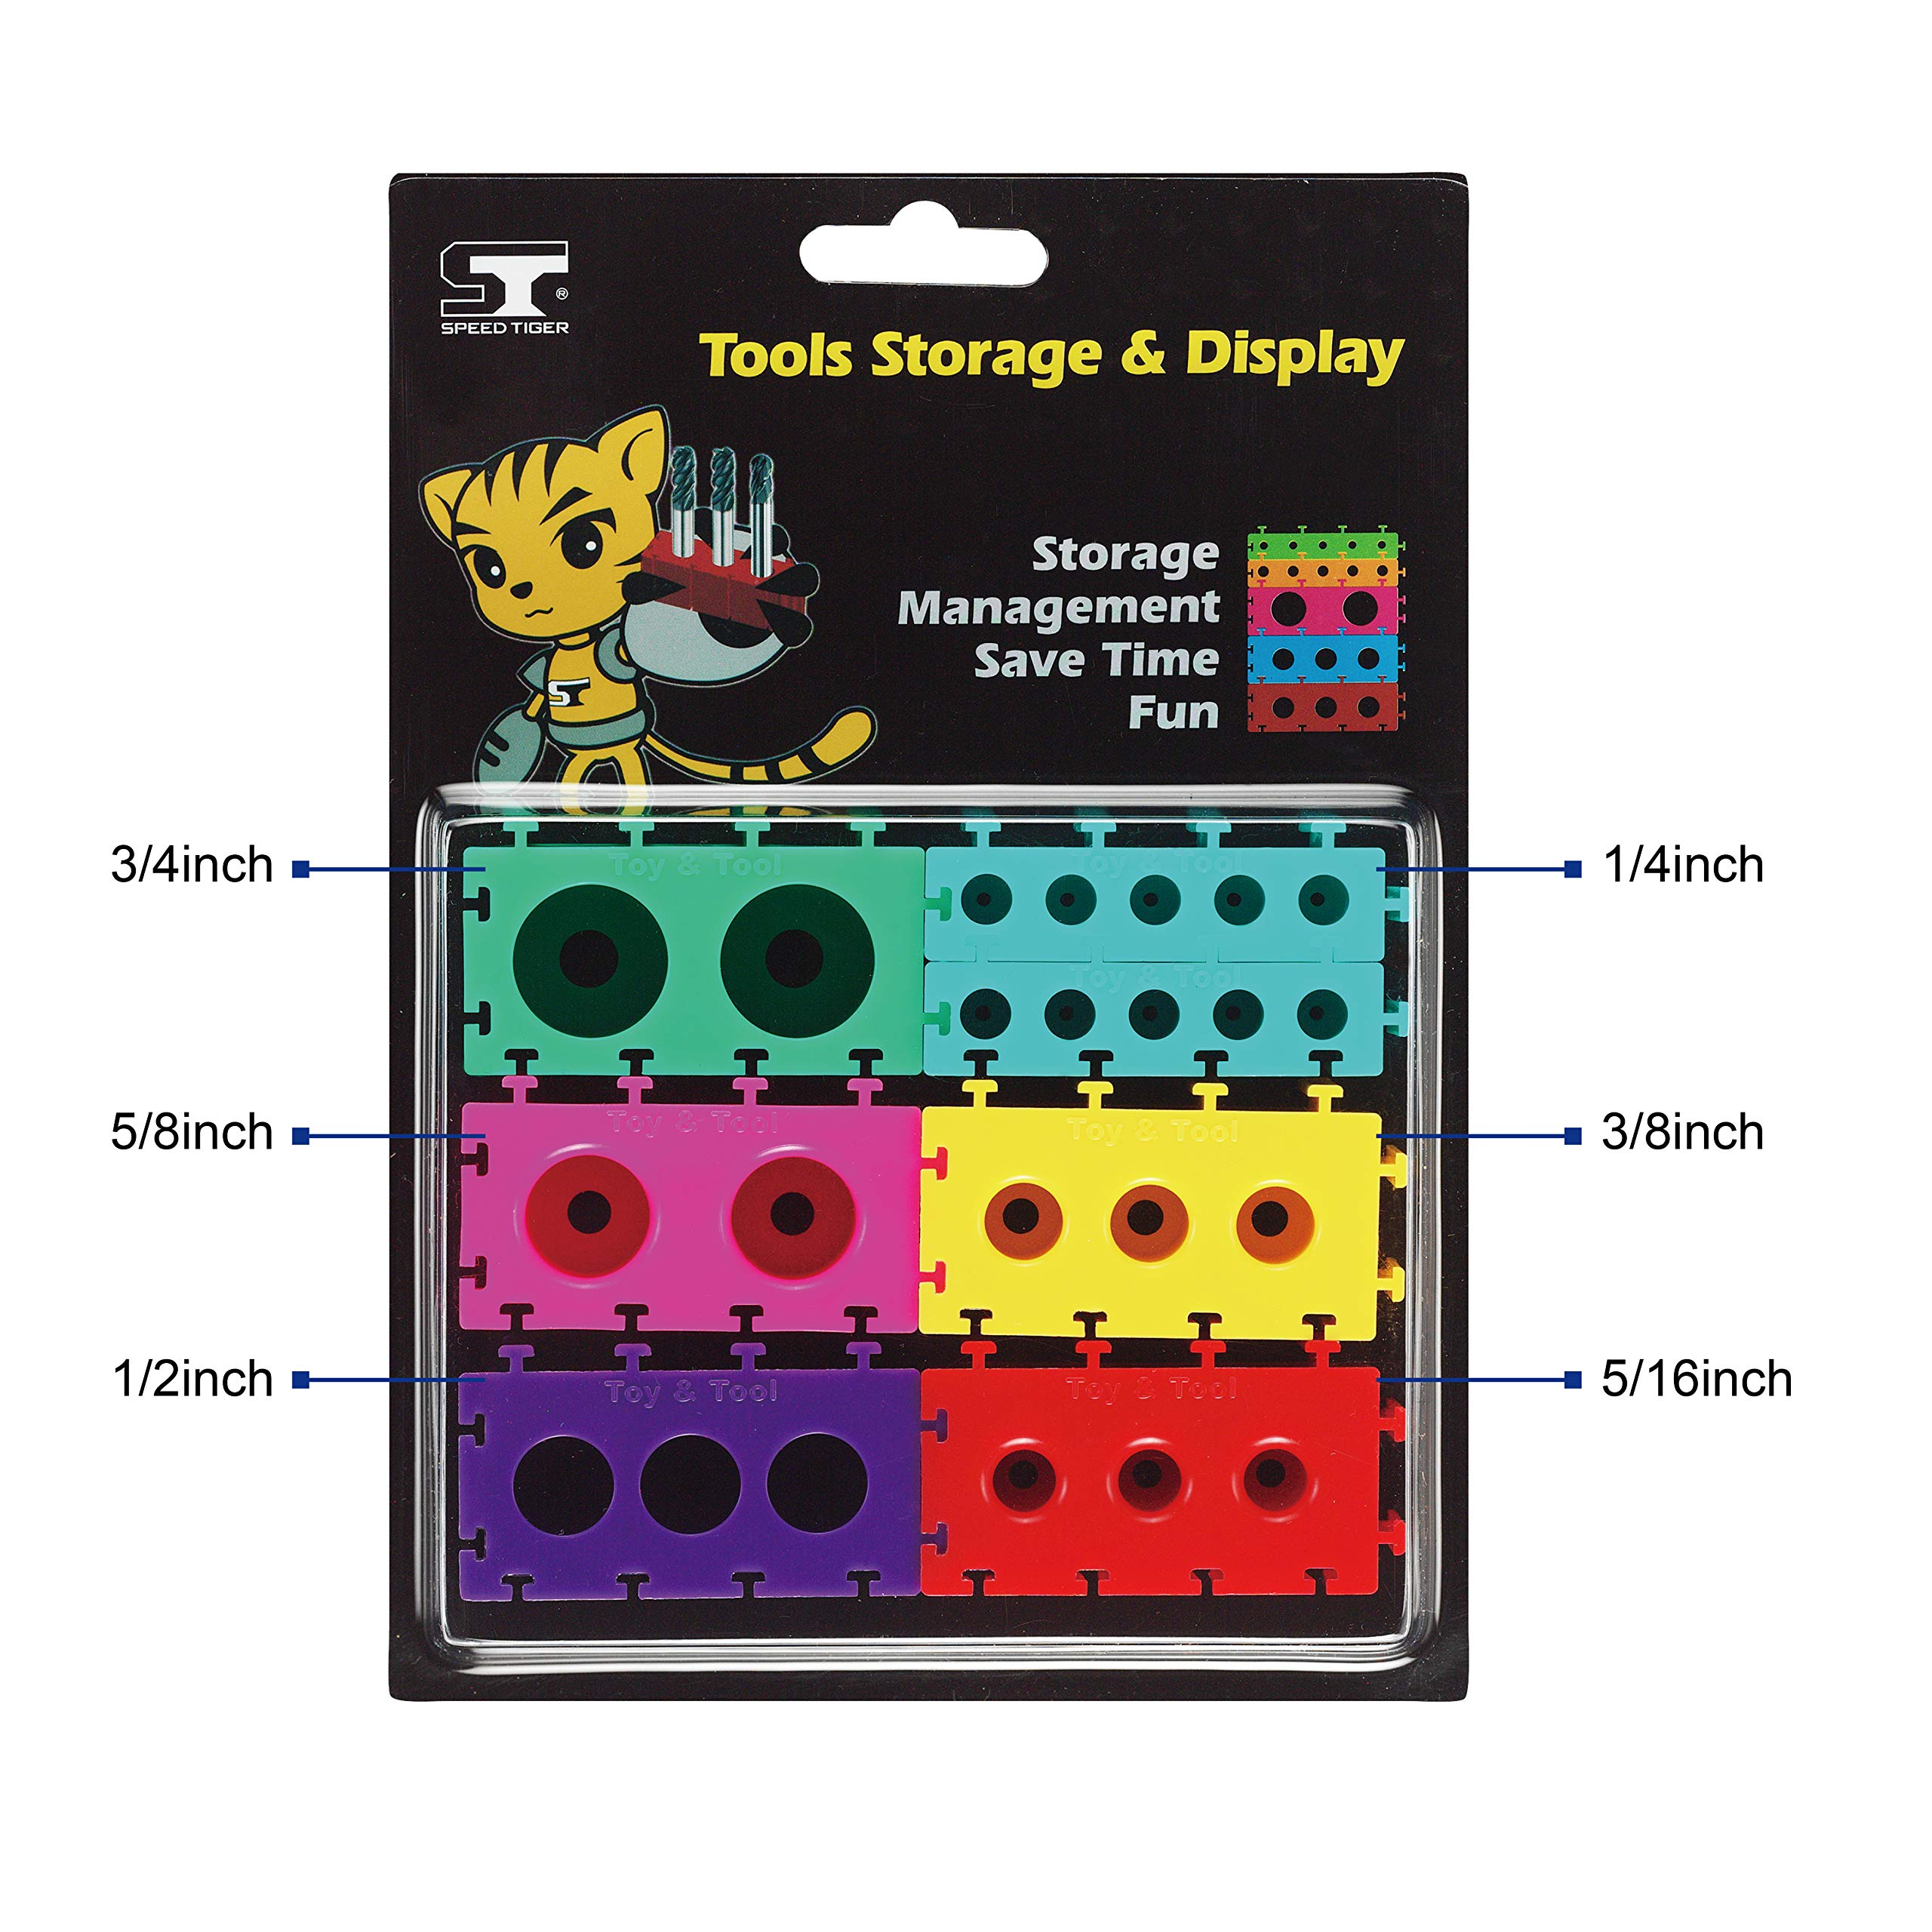 SPEED TIGER End Mill Holders - Tool Storage & Display Brick Set - Colorful and Convenient (Fractional)